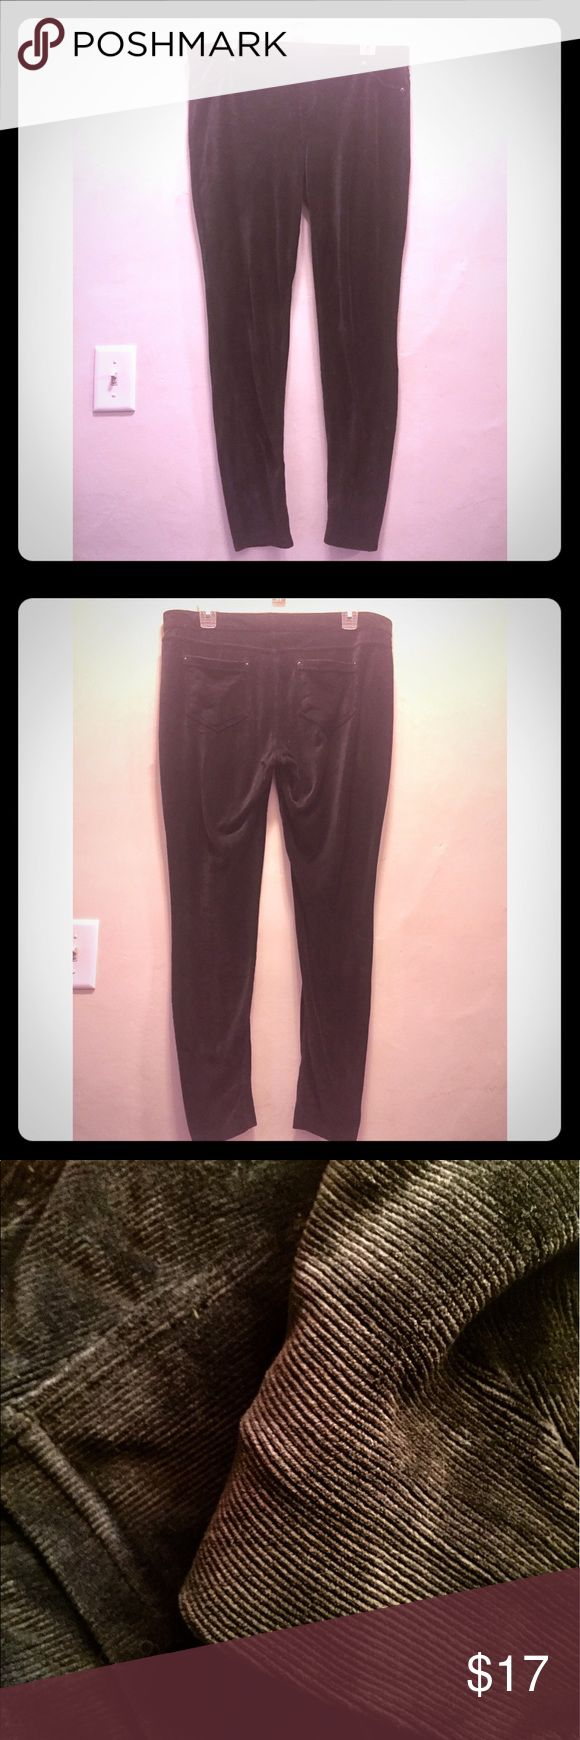 Black Vera Wang Corduroy Leggings These are super cool leggings by Vera Wang. Material looks like corduroy but is actually a poly spandex blend making them super comfy and stretchy! Real back pockets! Size large. Vera Wang Pants Leggings